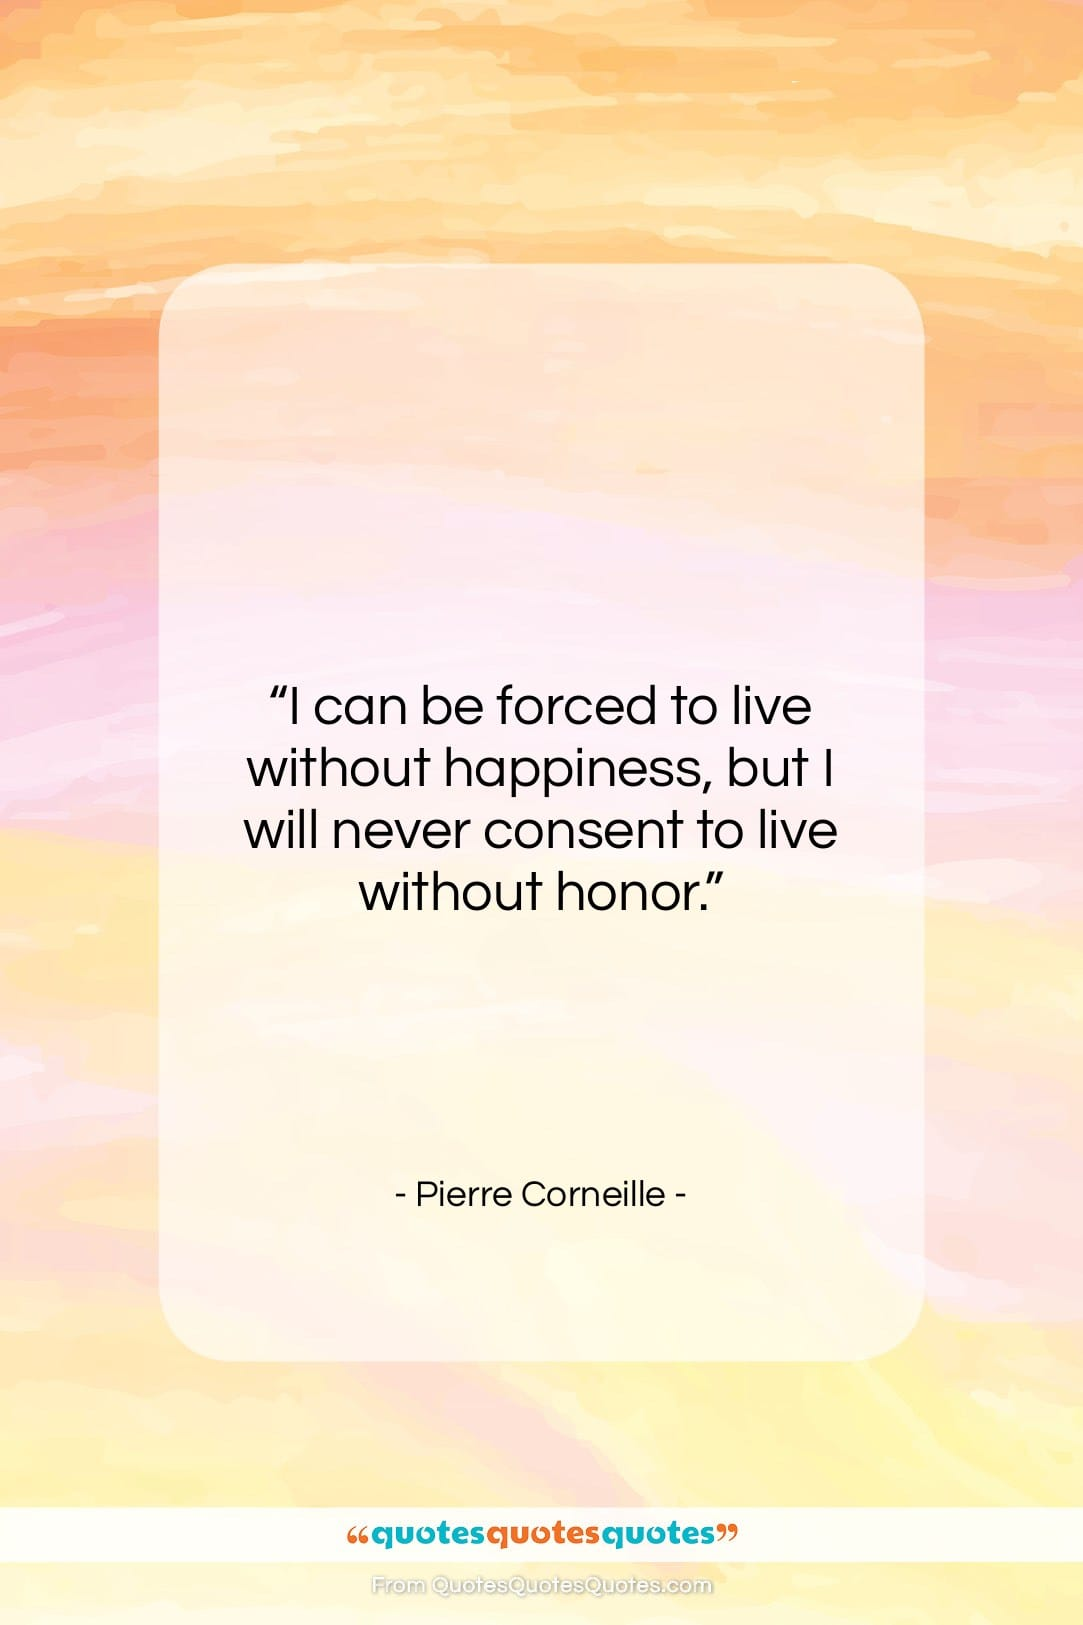 """Pierre Corneille quote: """"I can be forced to live without…""""- at QuotesQuotesQuotes.com"""